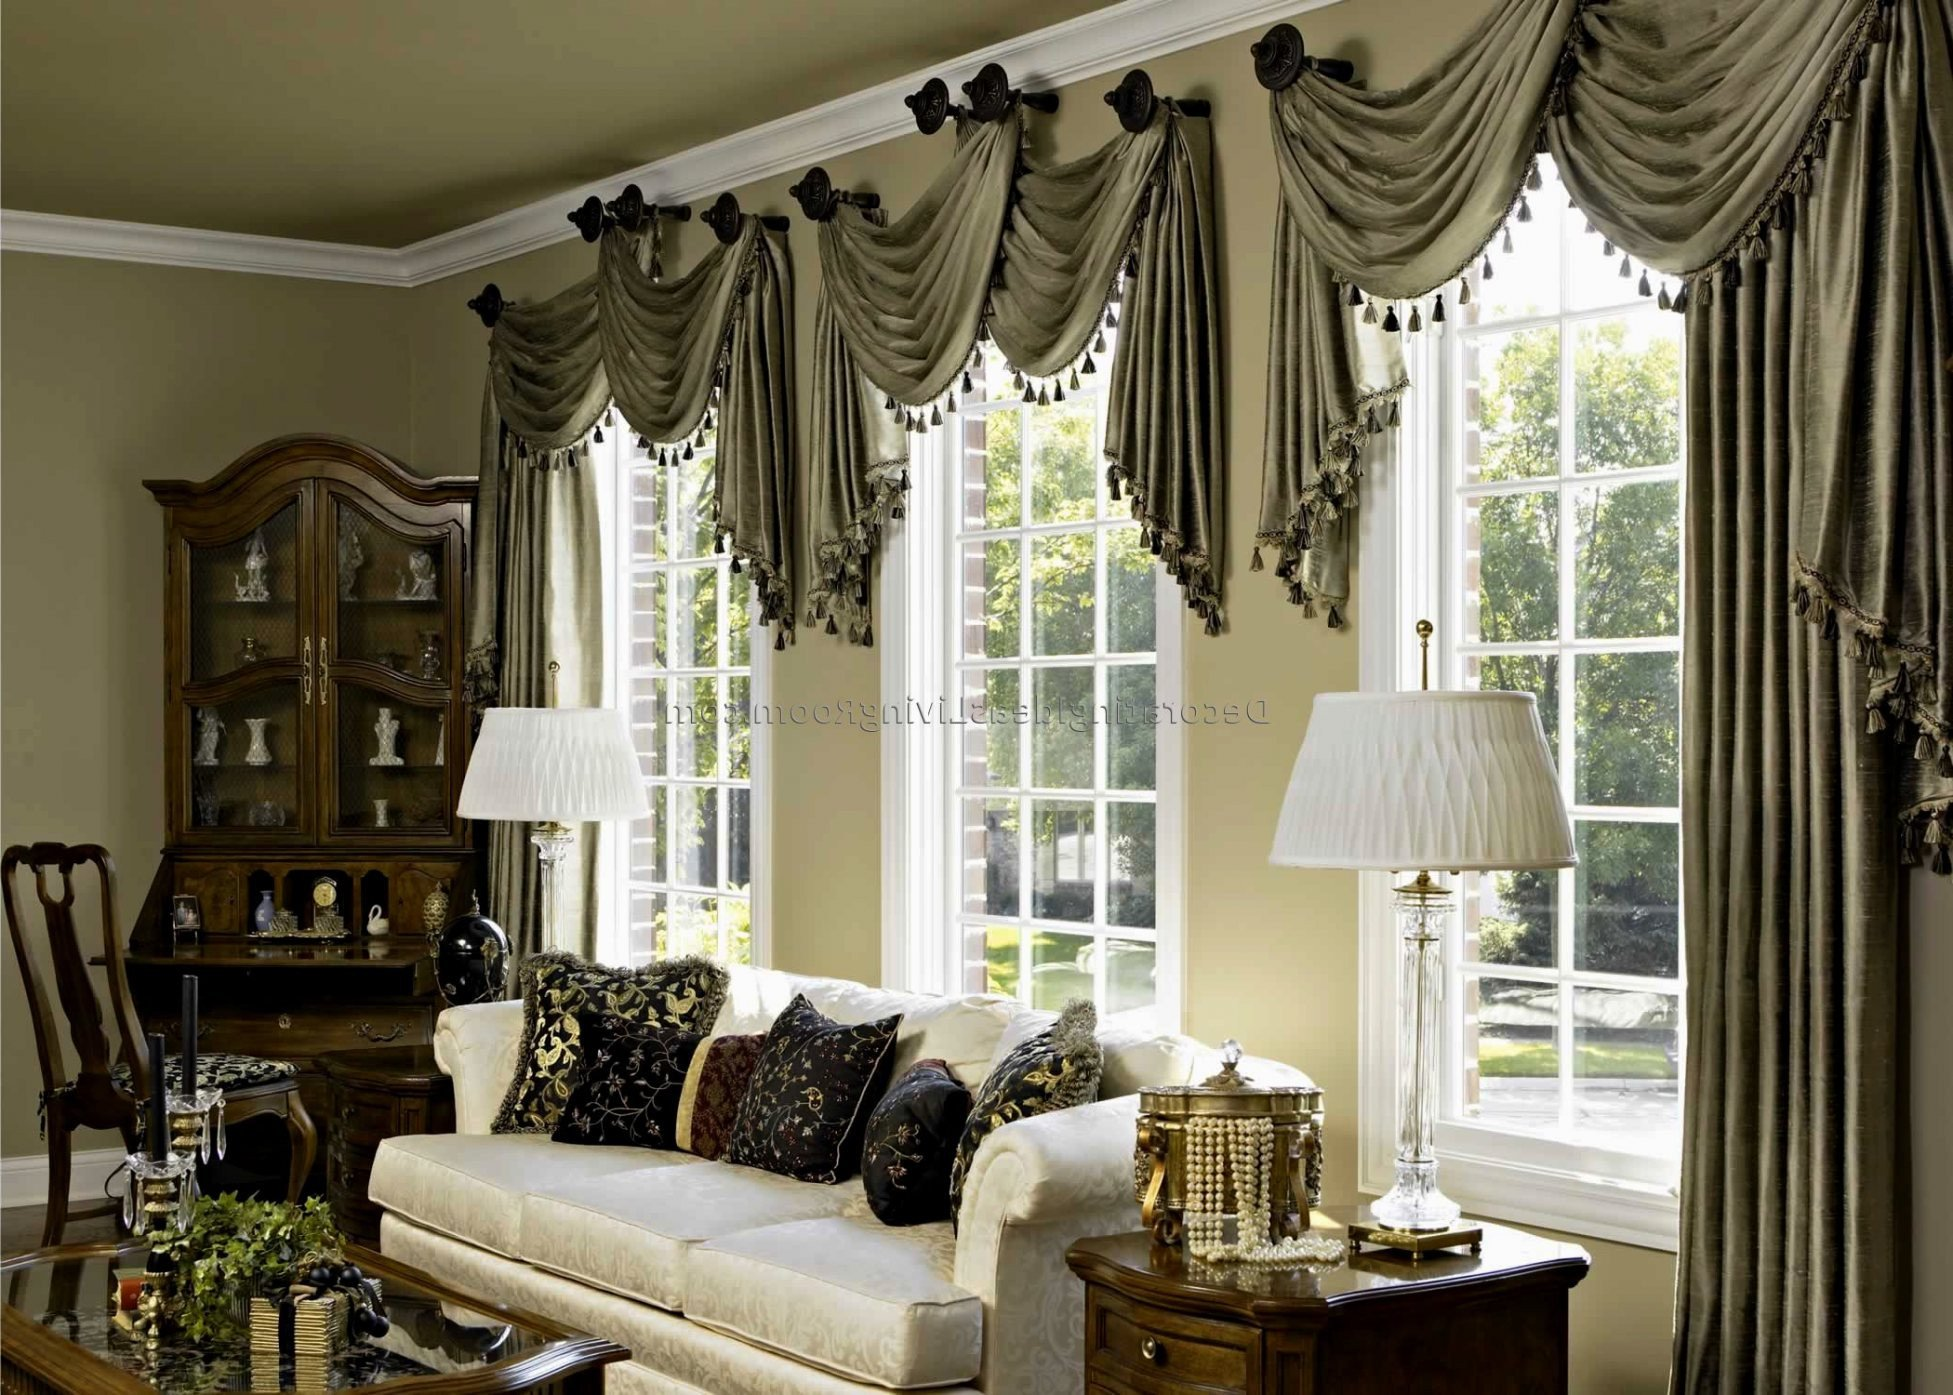 Curtain Styles for Bedroom Awesome Jcp Home Decor